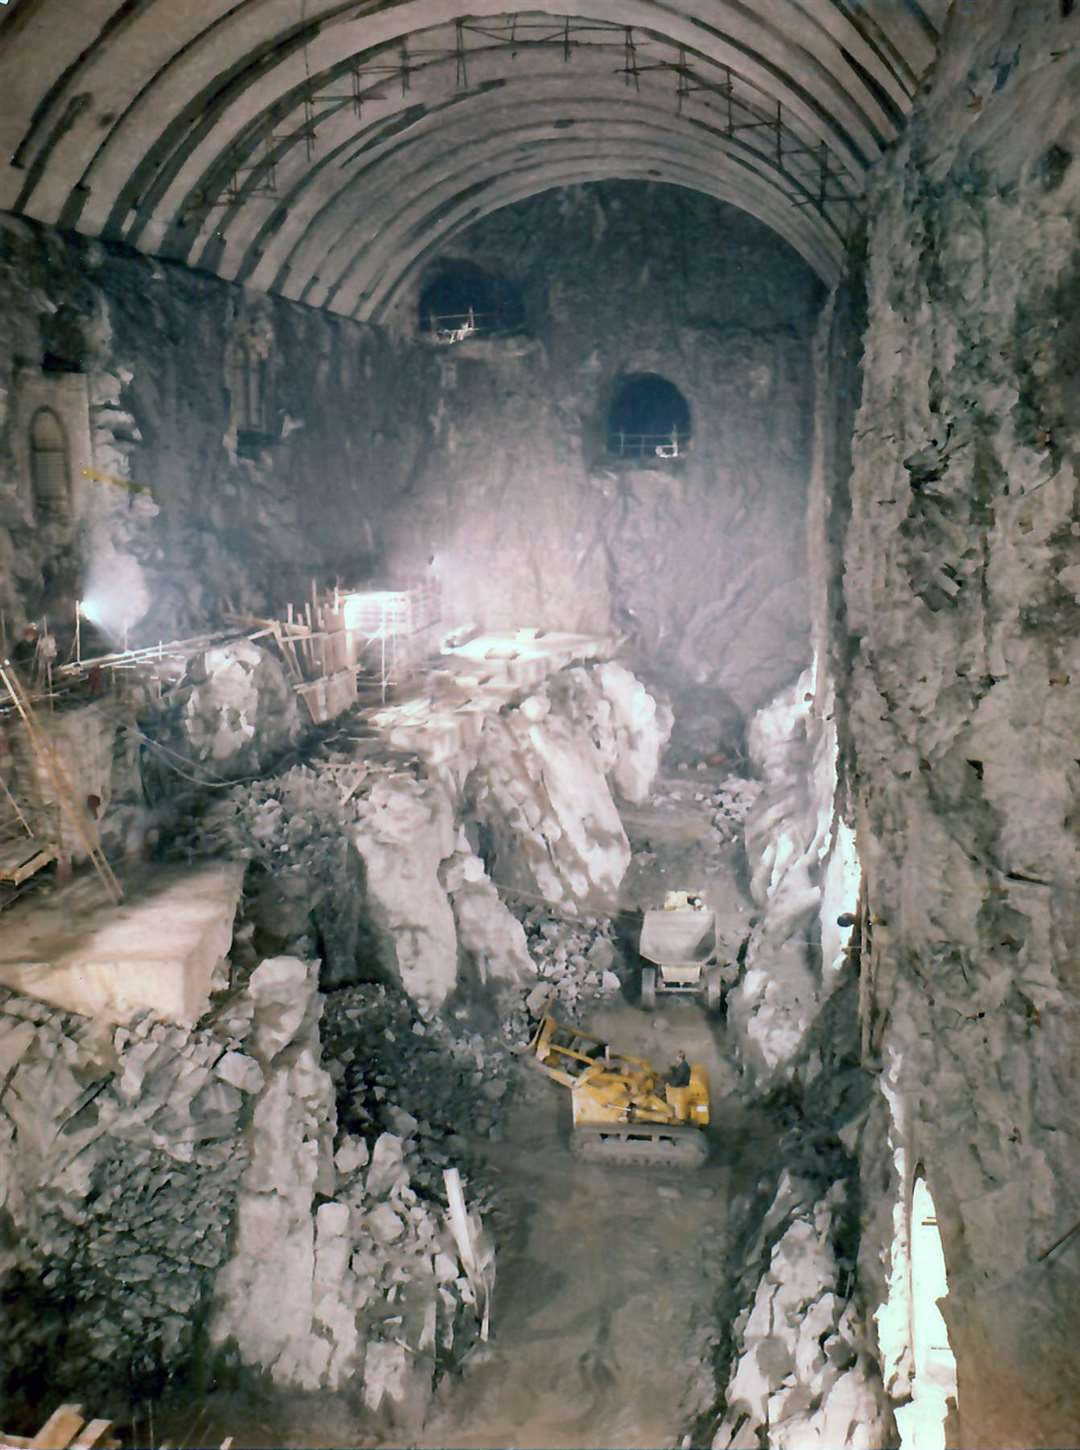 Inside one of the chambers in the Foyers hydro scheme which was excavated as part of the project that was finished in 1975. Picture supplied by John Davidson